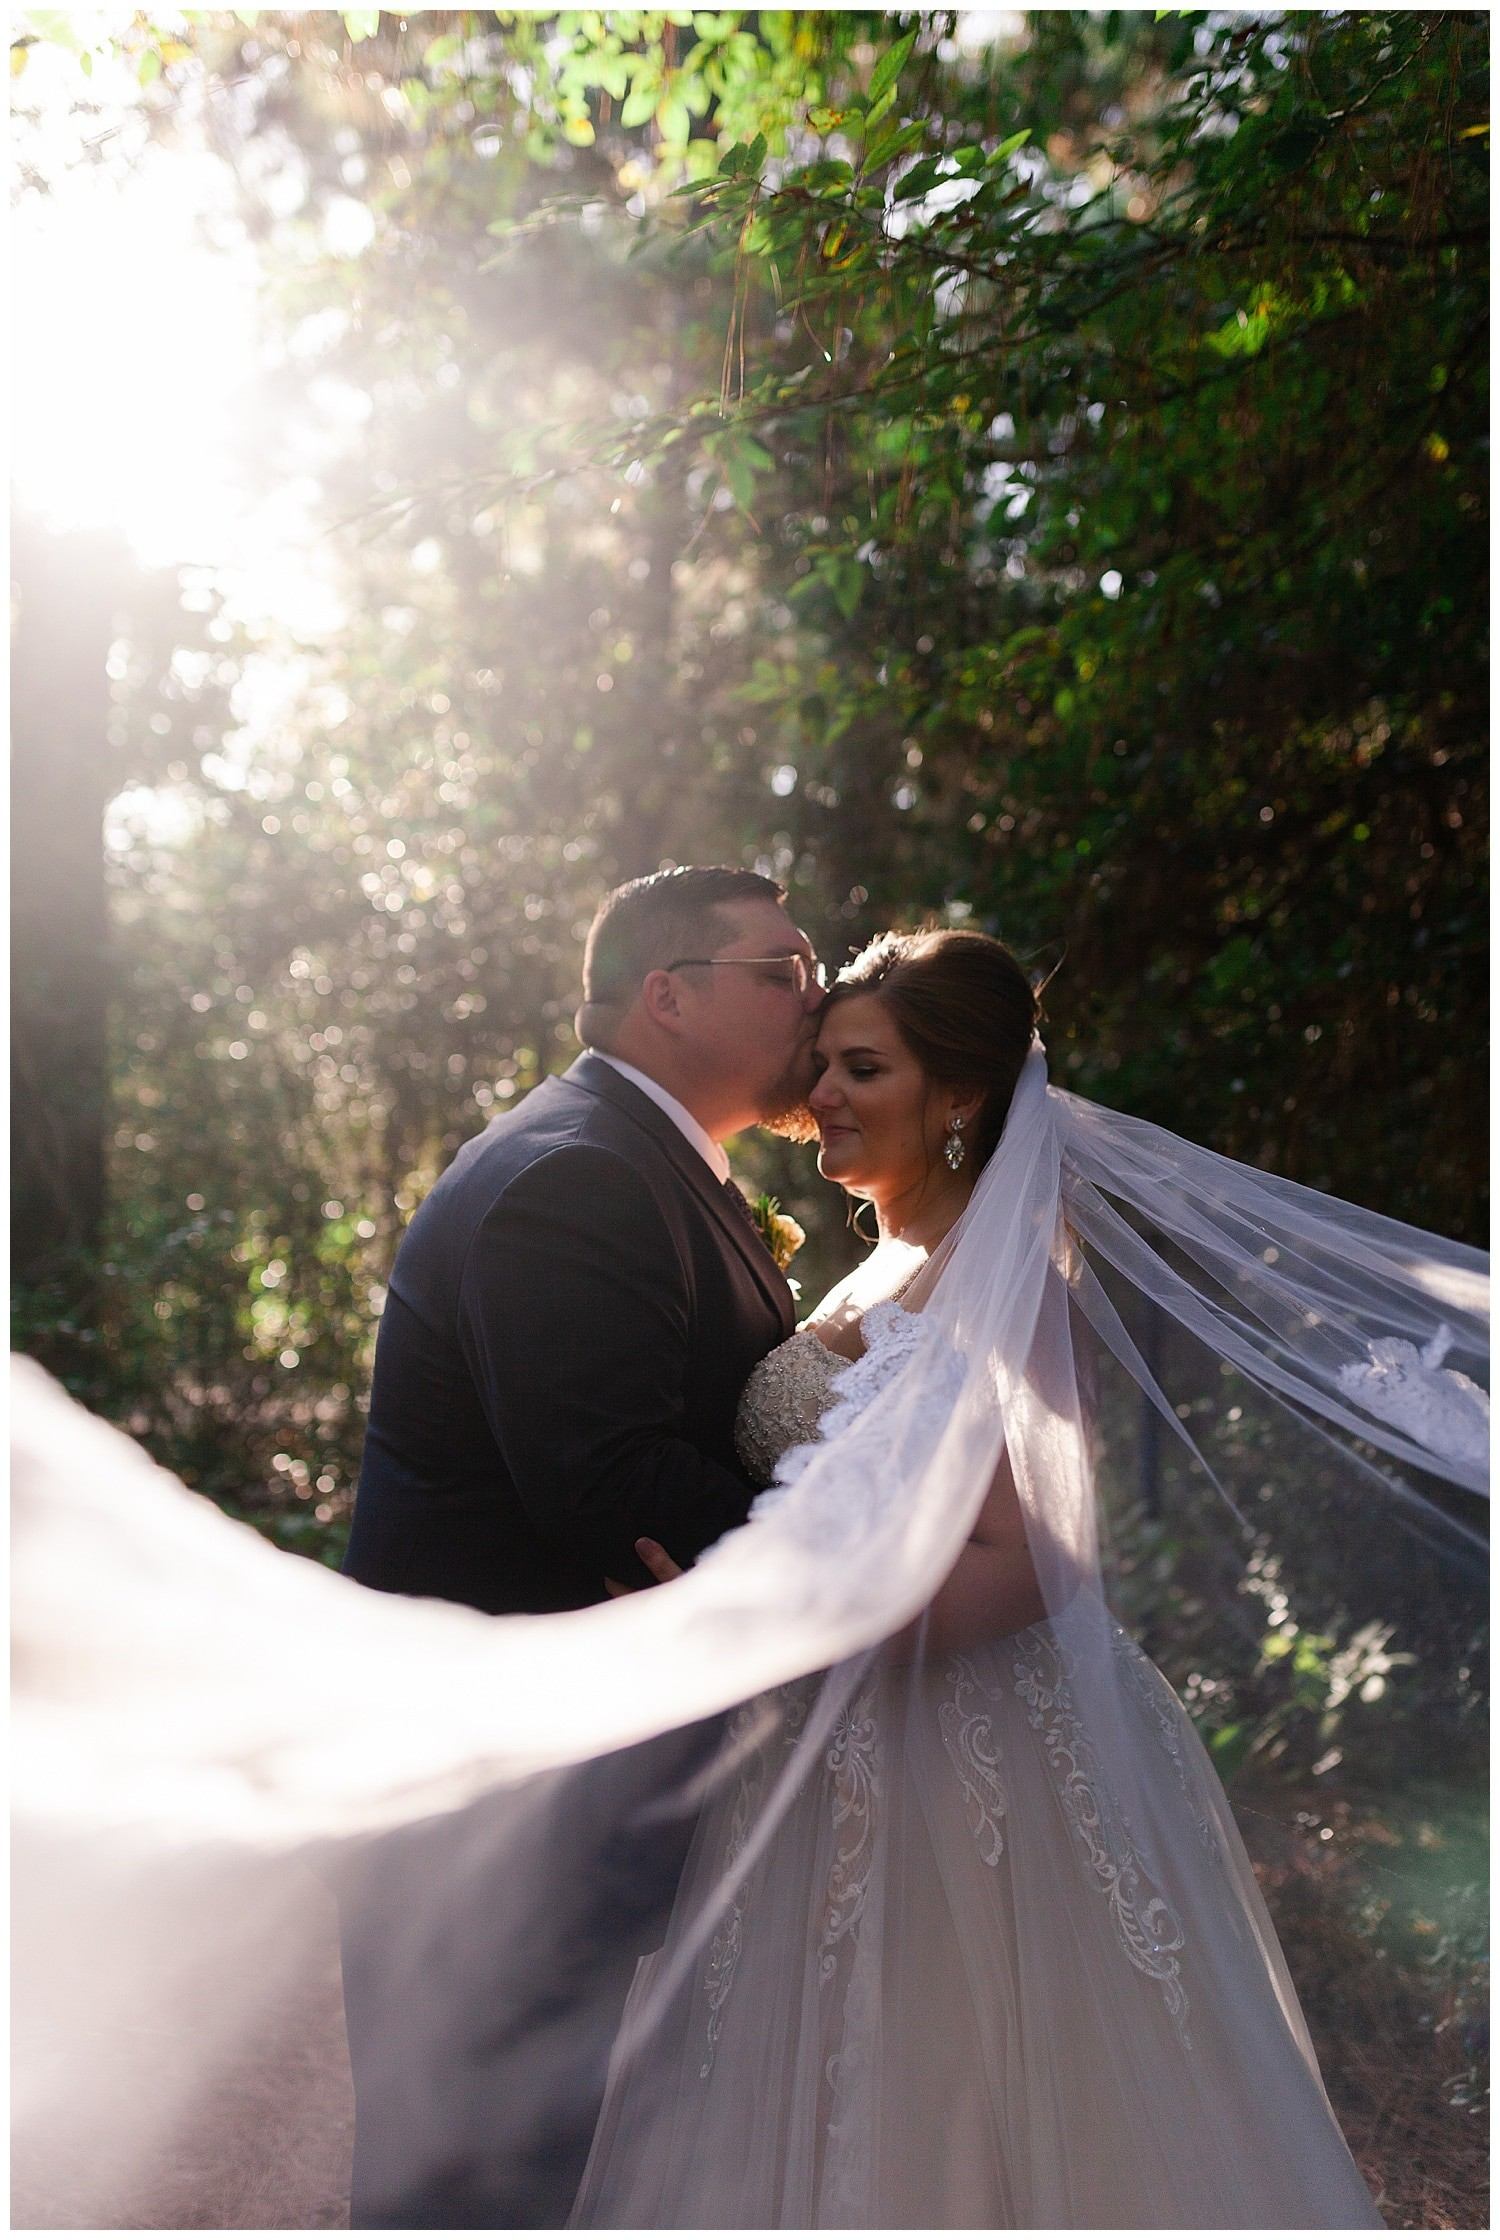 couples portraits at Magnolia Bells wedding venue photographed by Swish and Click Photography